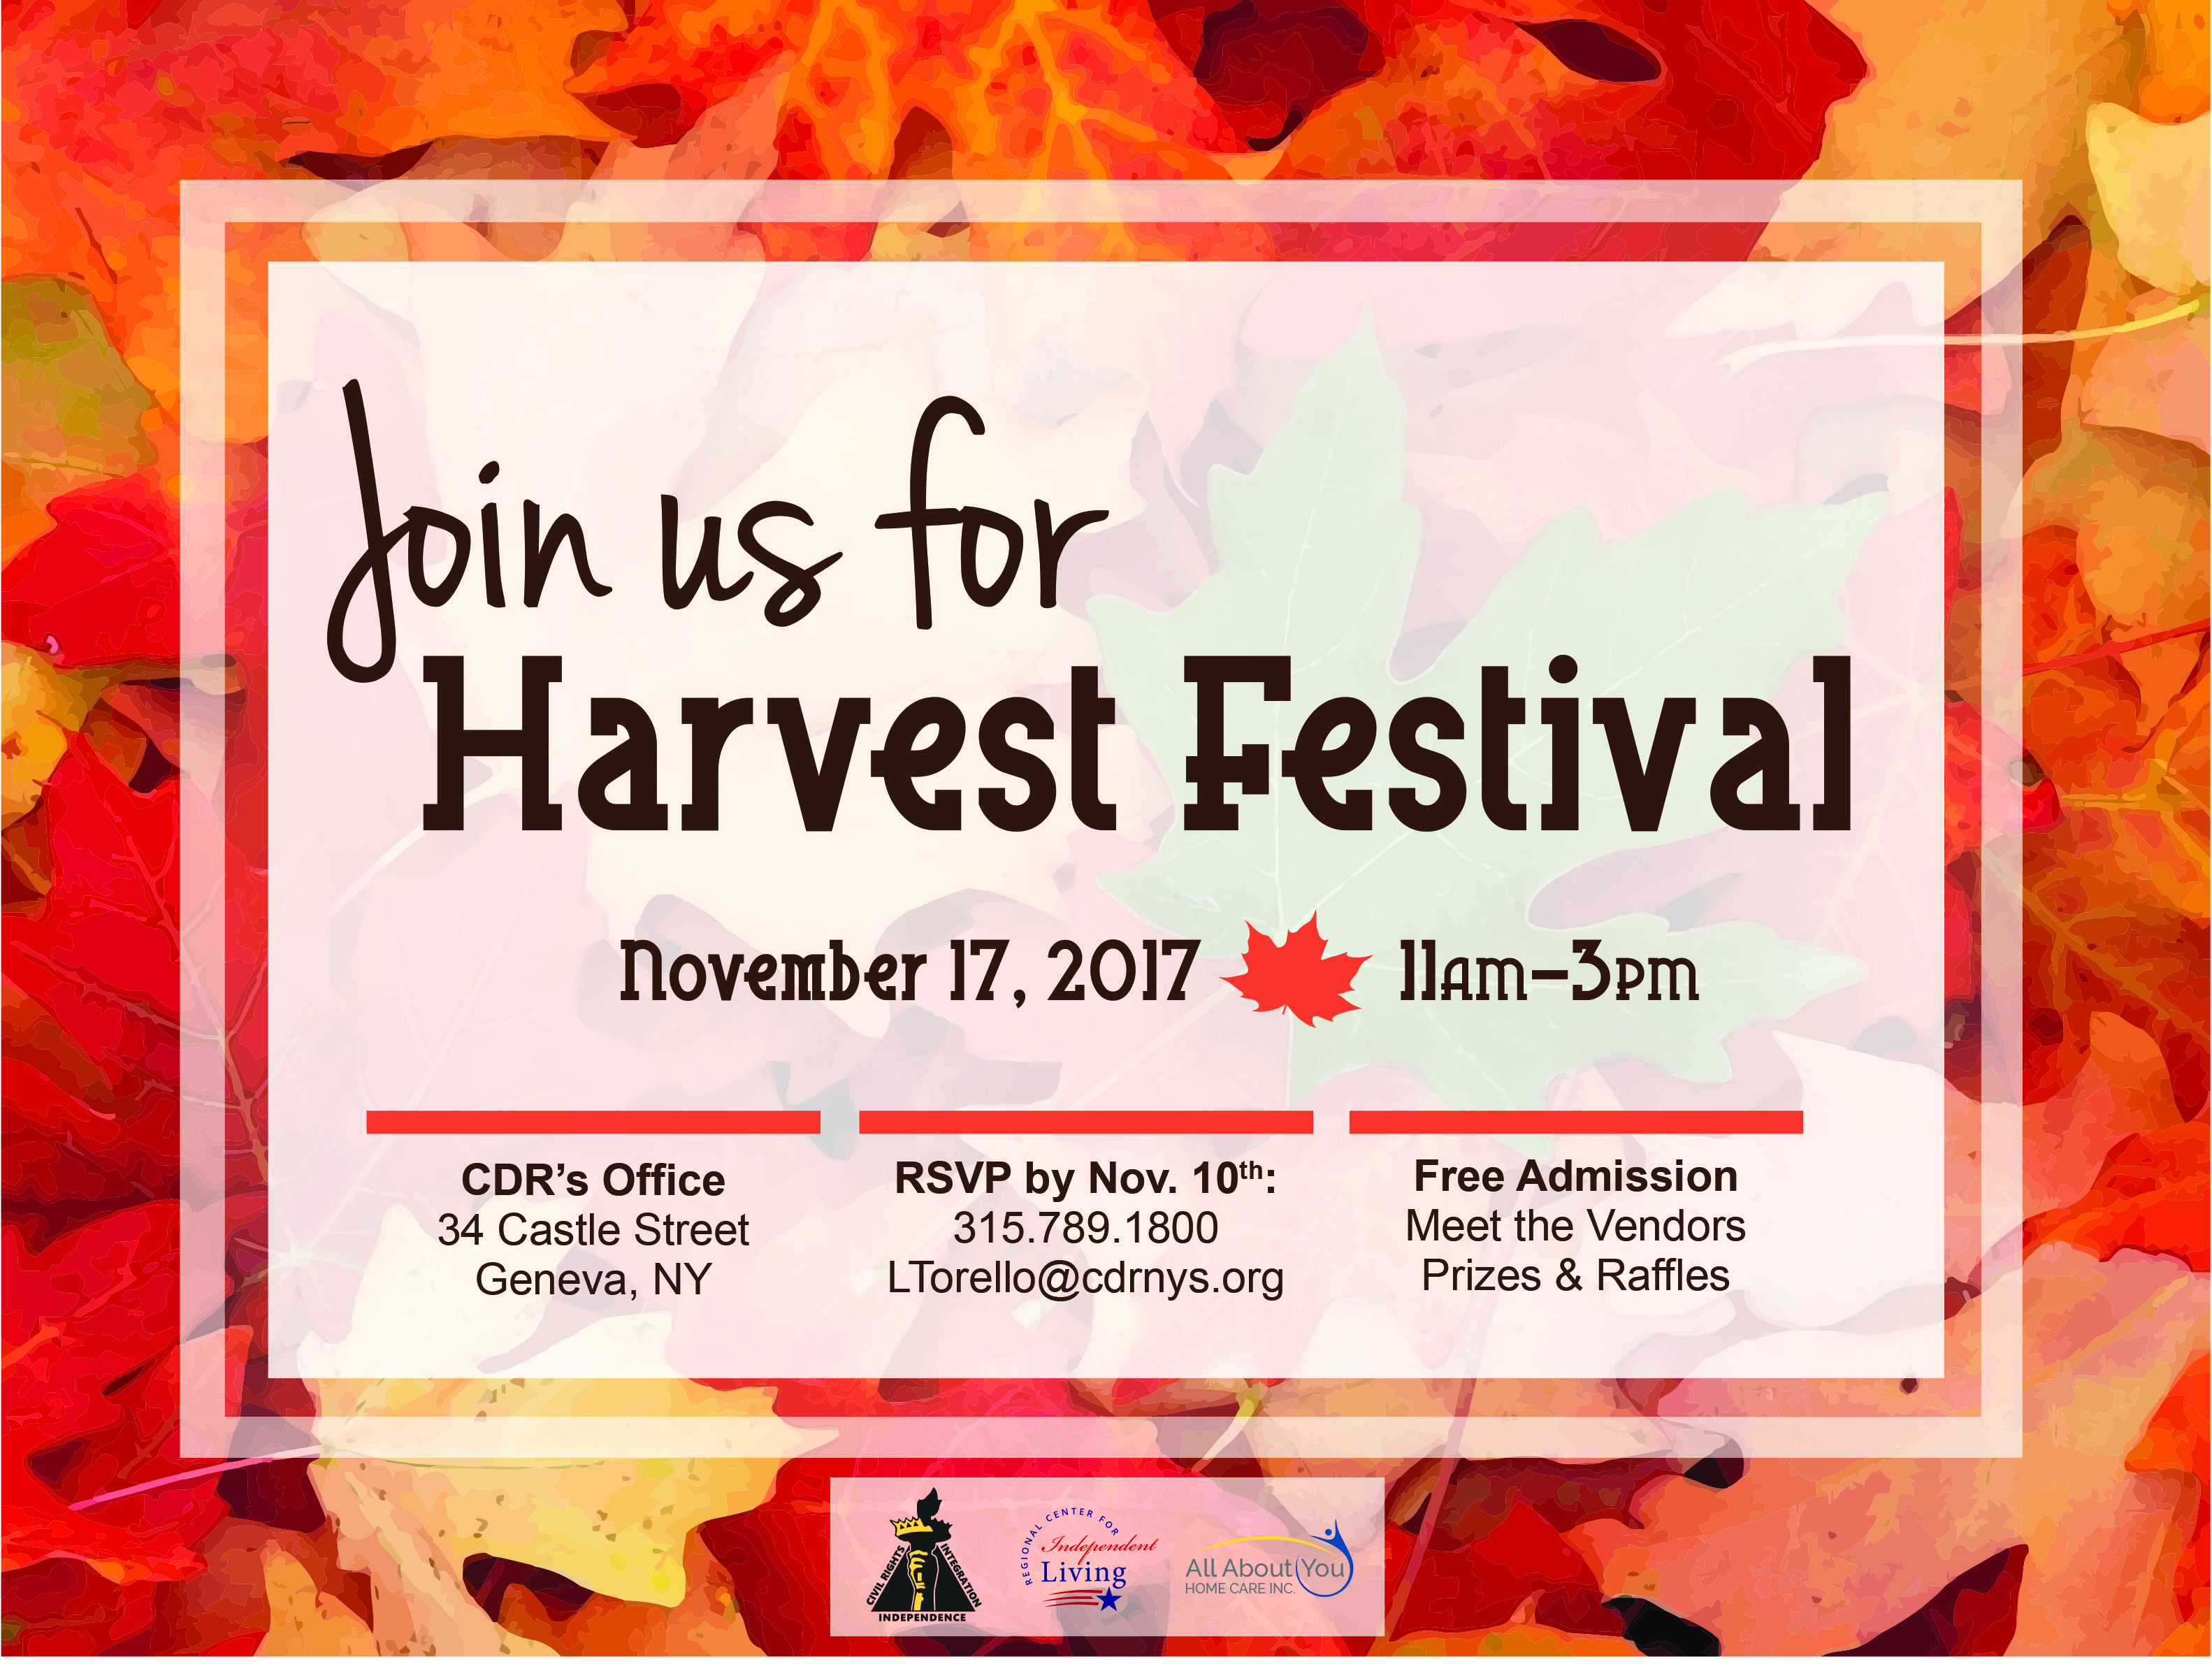 Join us for Harvest Festival. November 17, 2017. 11am - 3pm. CDR's Office, 34 Castle Street, Geneva, NY. Free Admission, Meet the Vendors, Prizes and Raffles! RSVP by Nov. 10th: 315.789.1800 or LTorello@cdrnys.org.